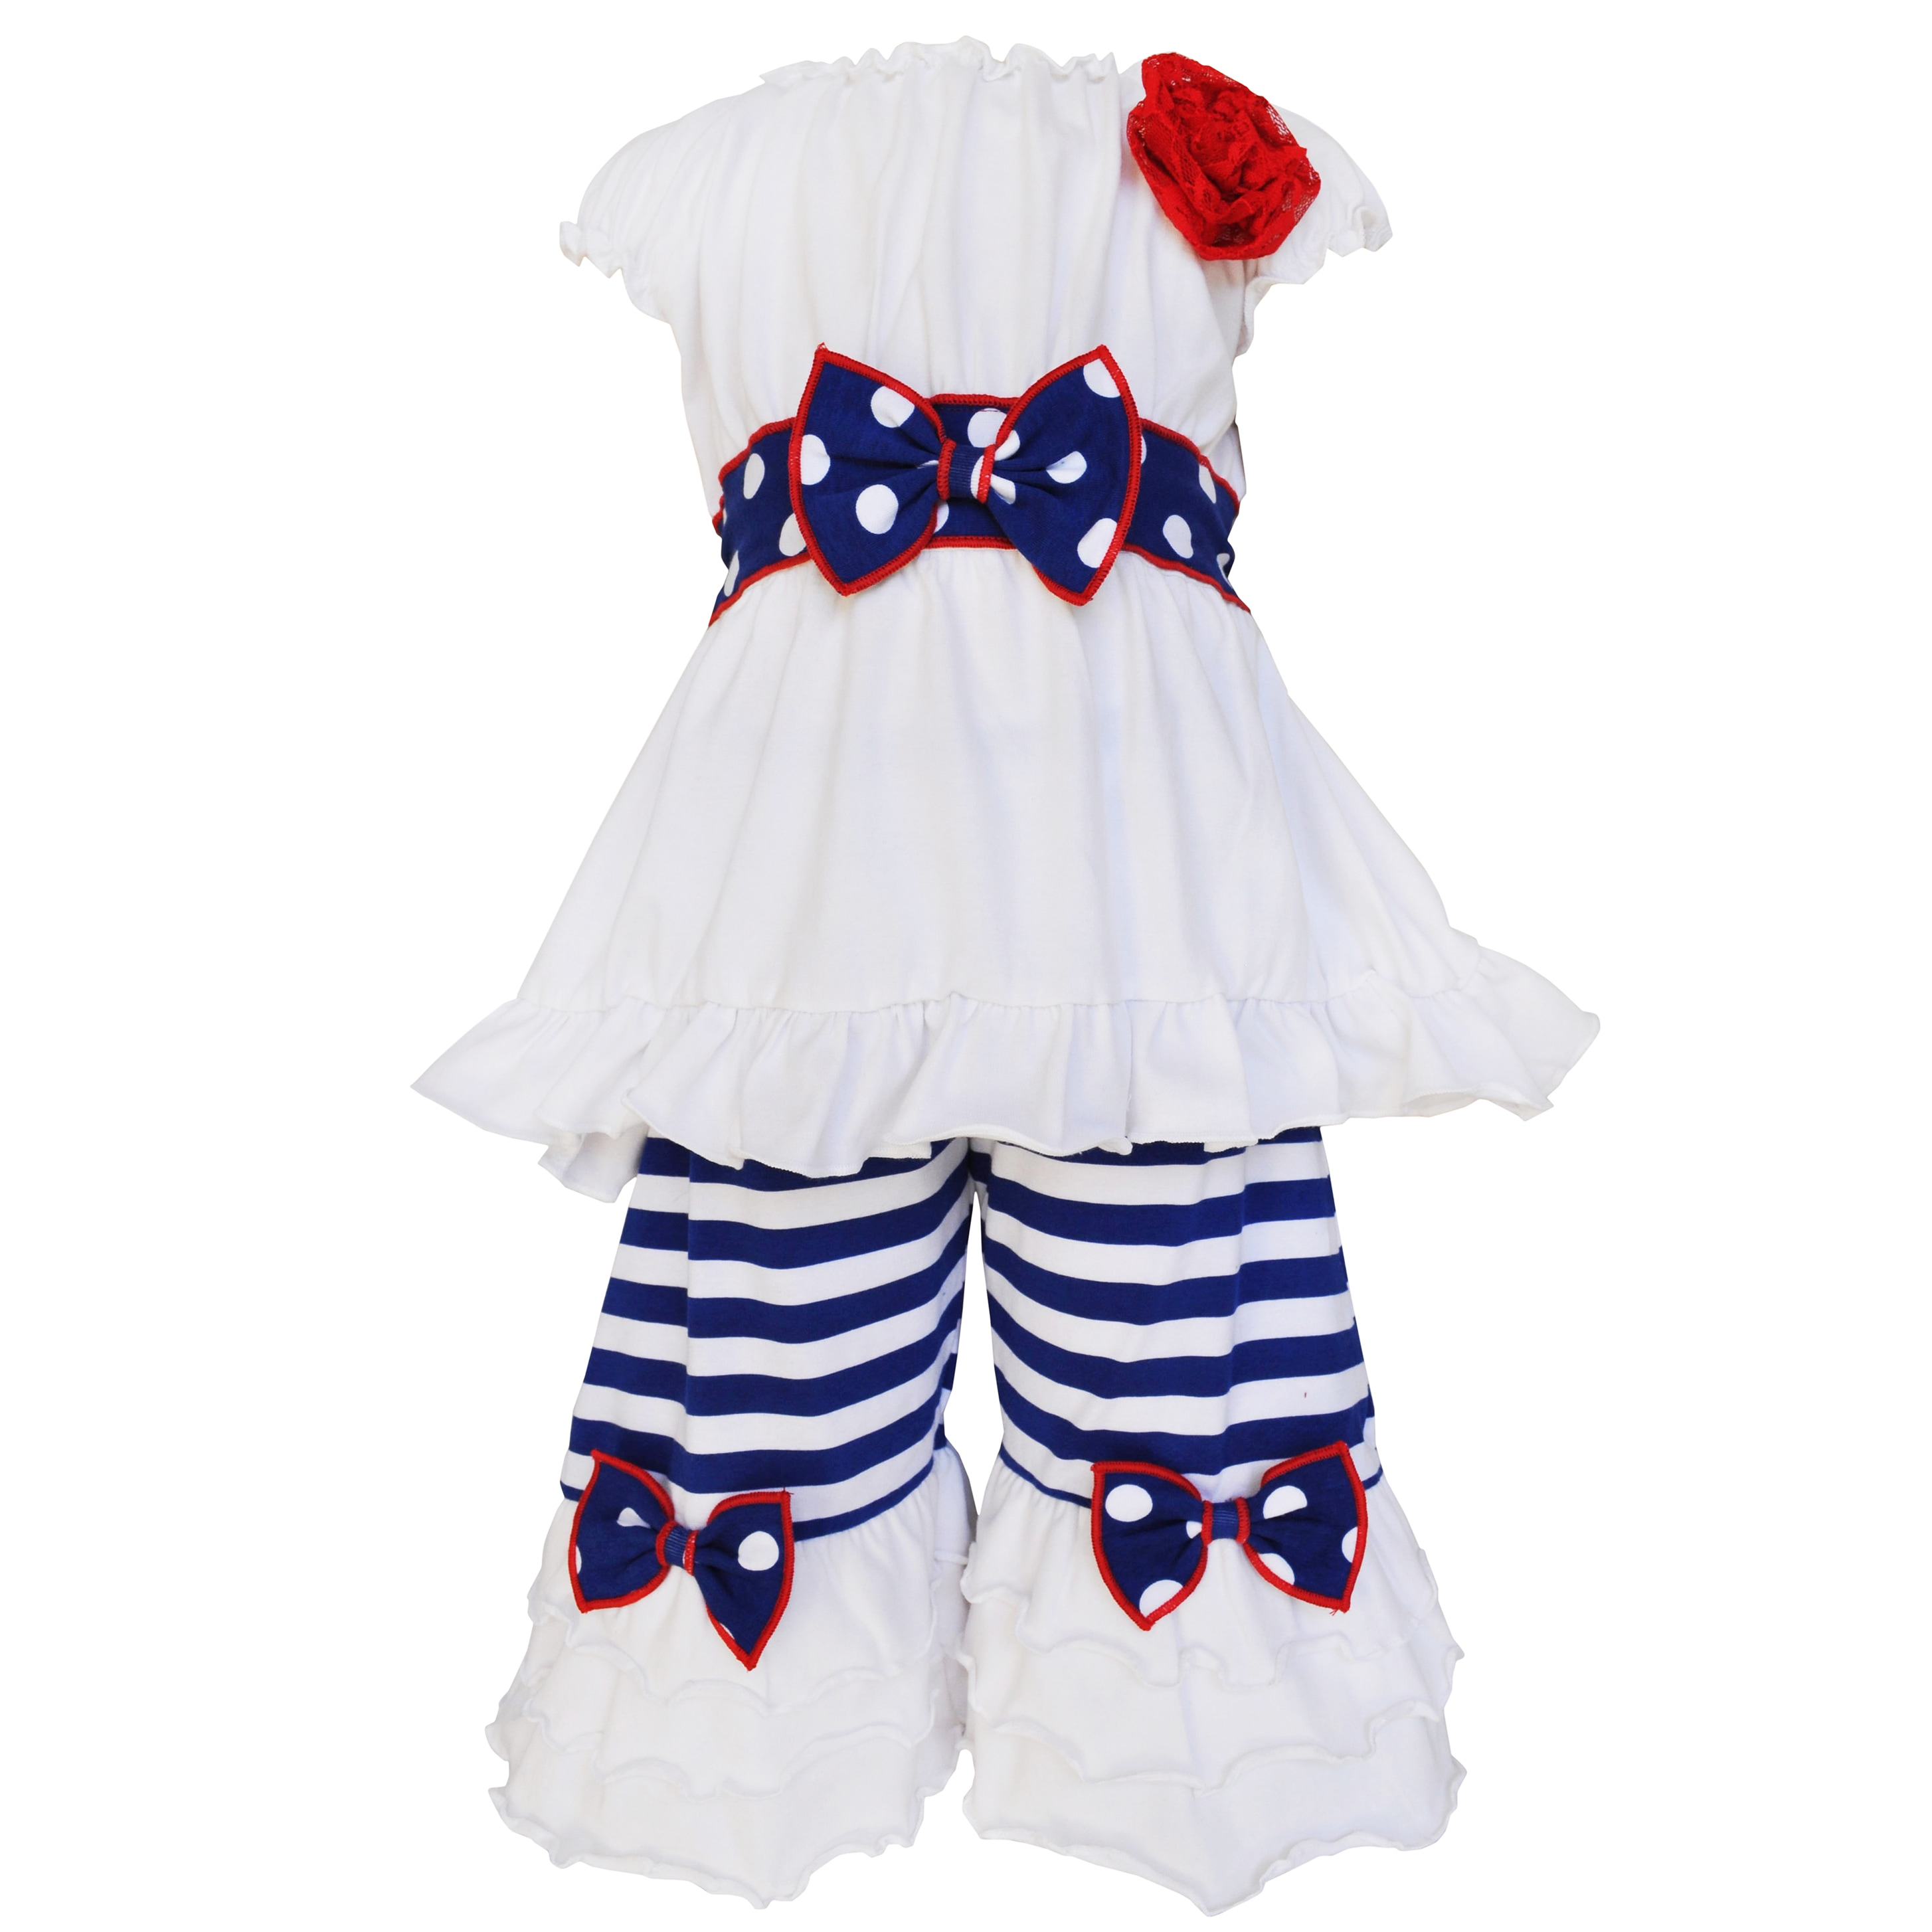 Girls Boutique Ruffled Tunic /& Pants Set Floral /& Stripes Adoarable NEW 2T